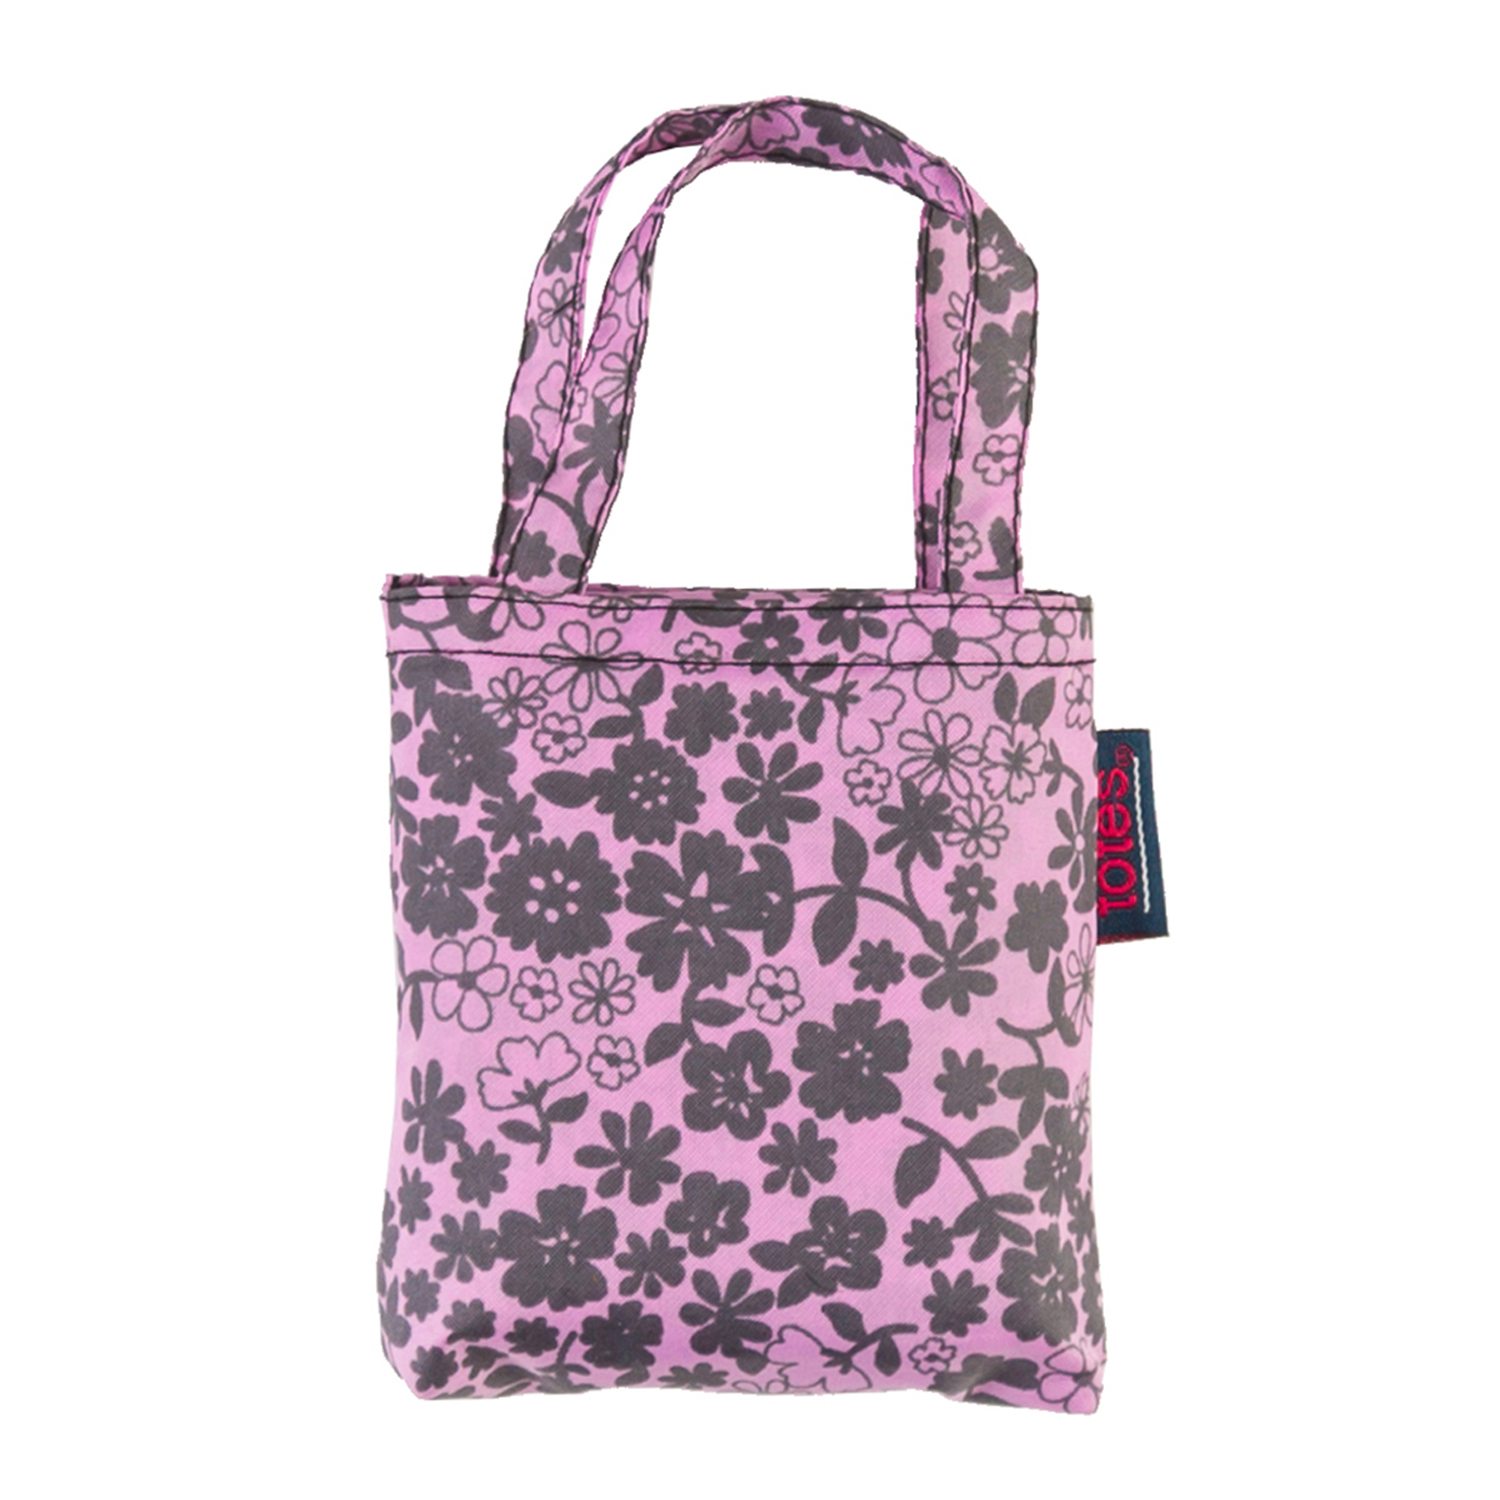 Image of Totes Bag In Bag Shopper, Lilac